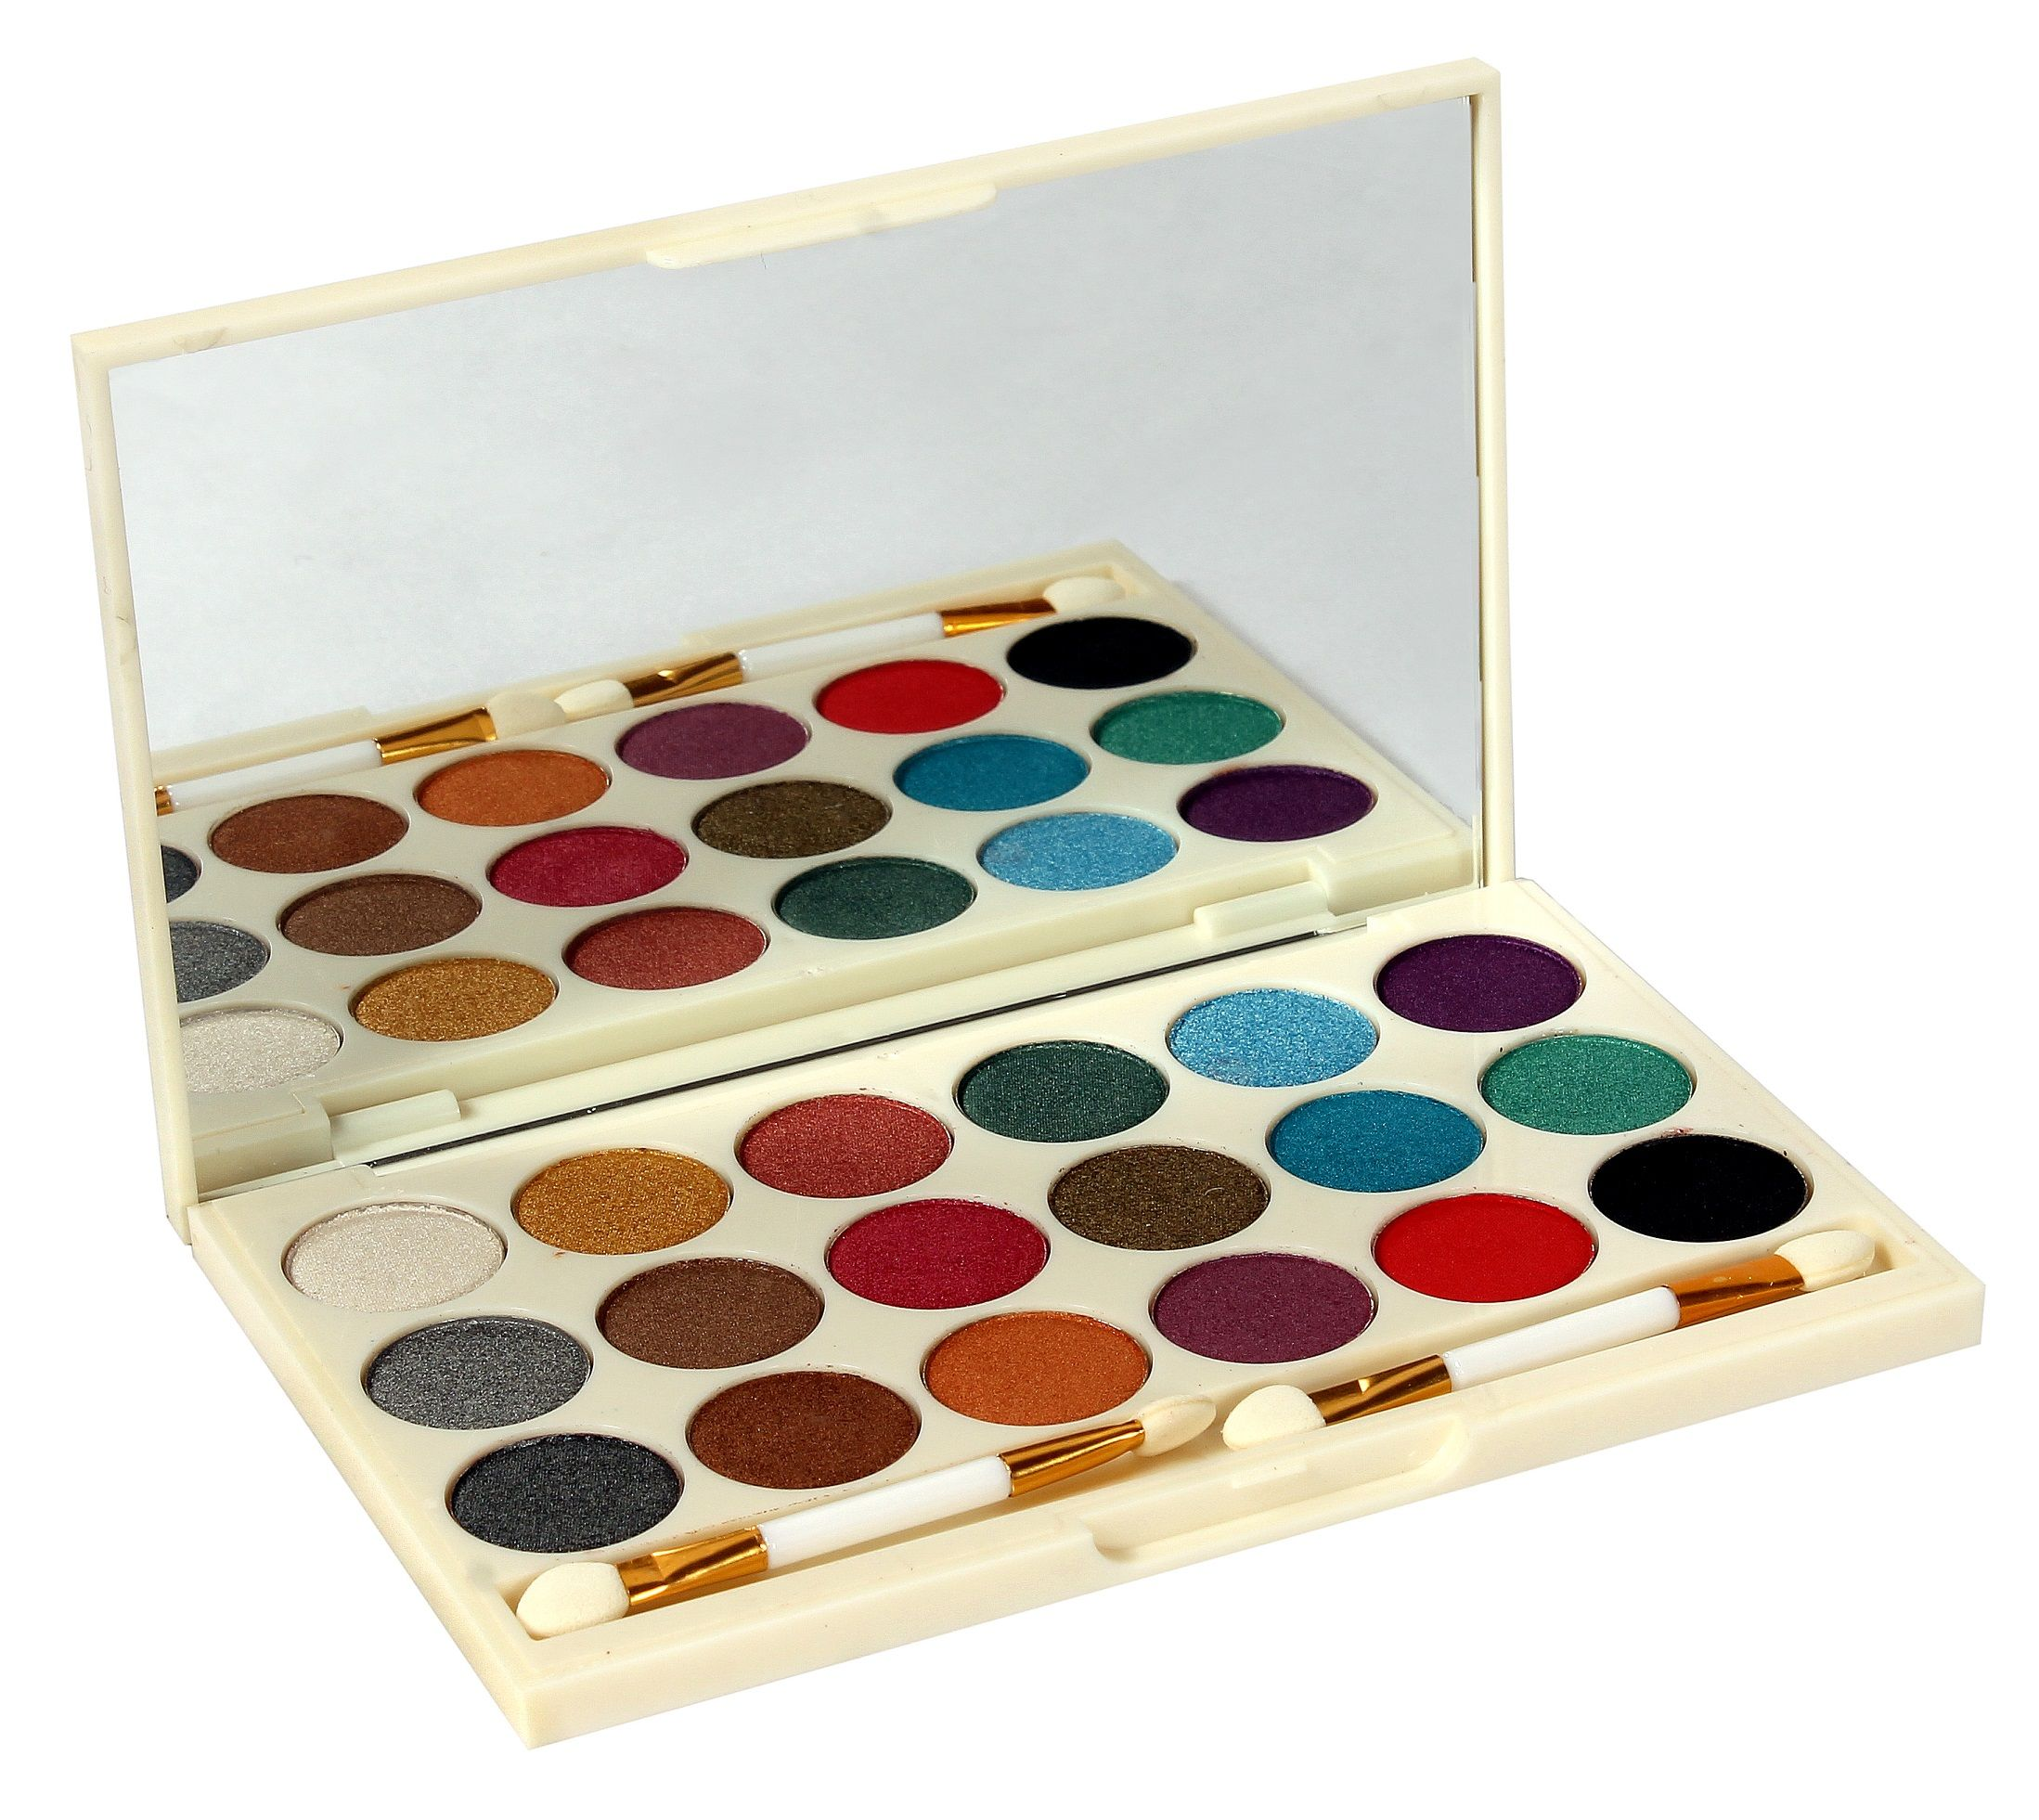 Incolor 18 In 1 Eyeshadow Kit - 1 at Nykaa.com 1549c8879e9a